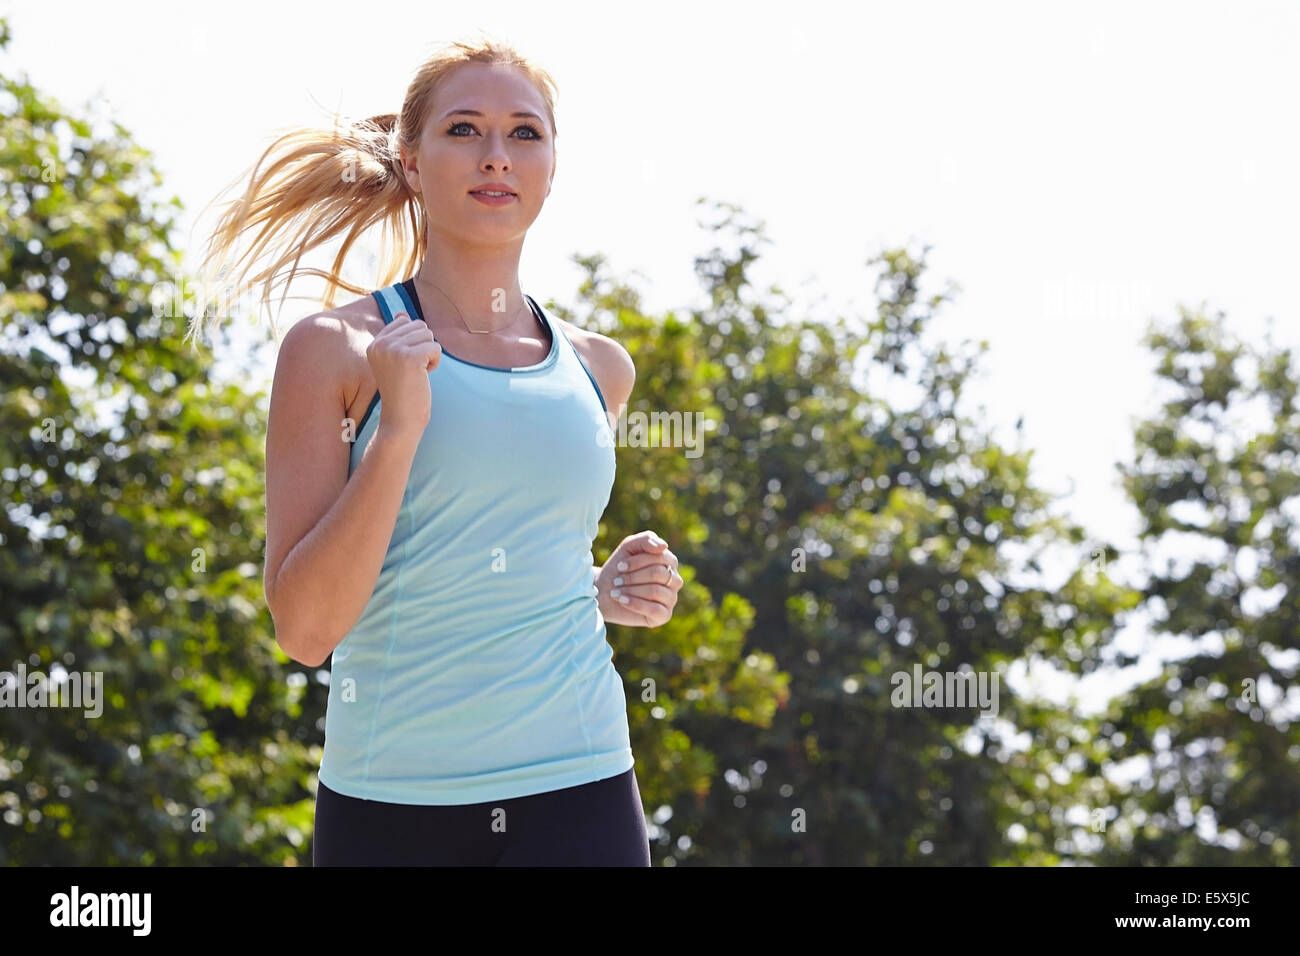 Woman running in park - Stock Image